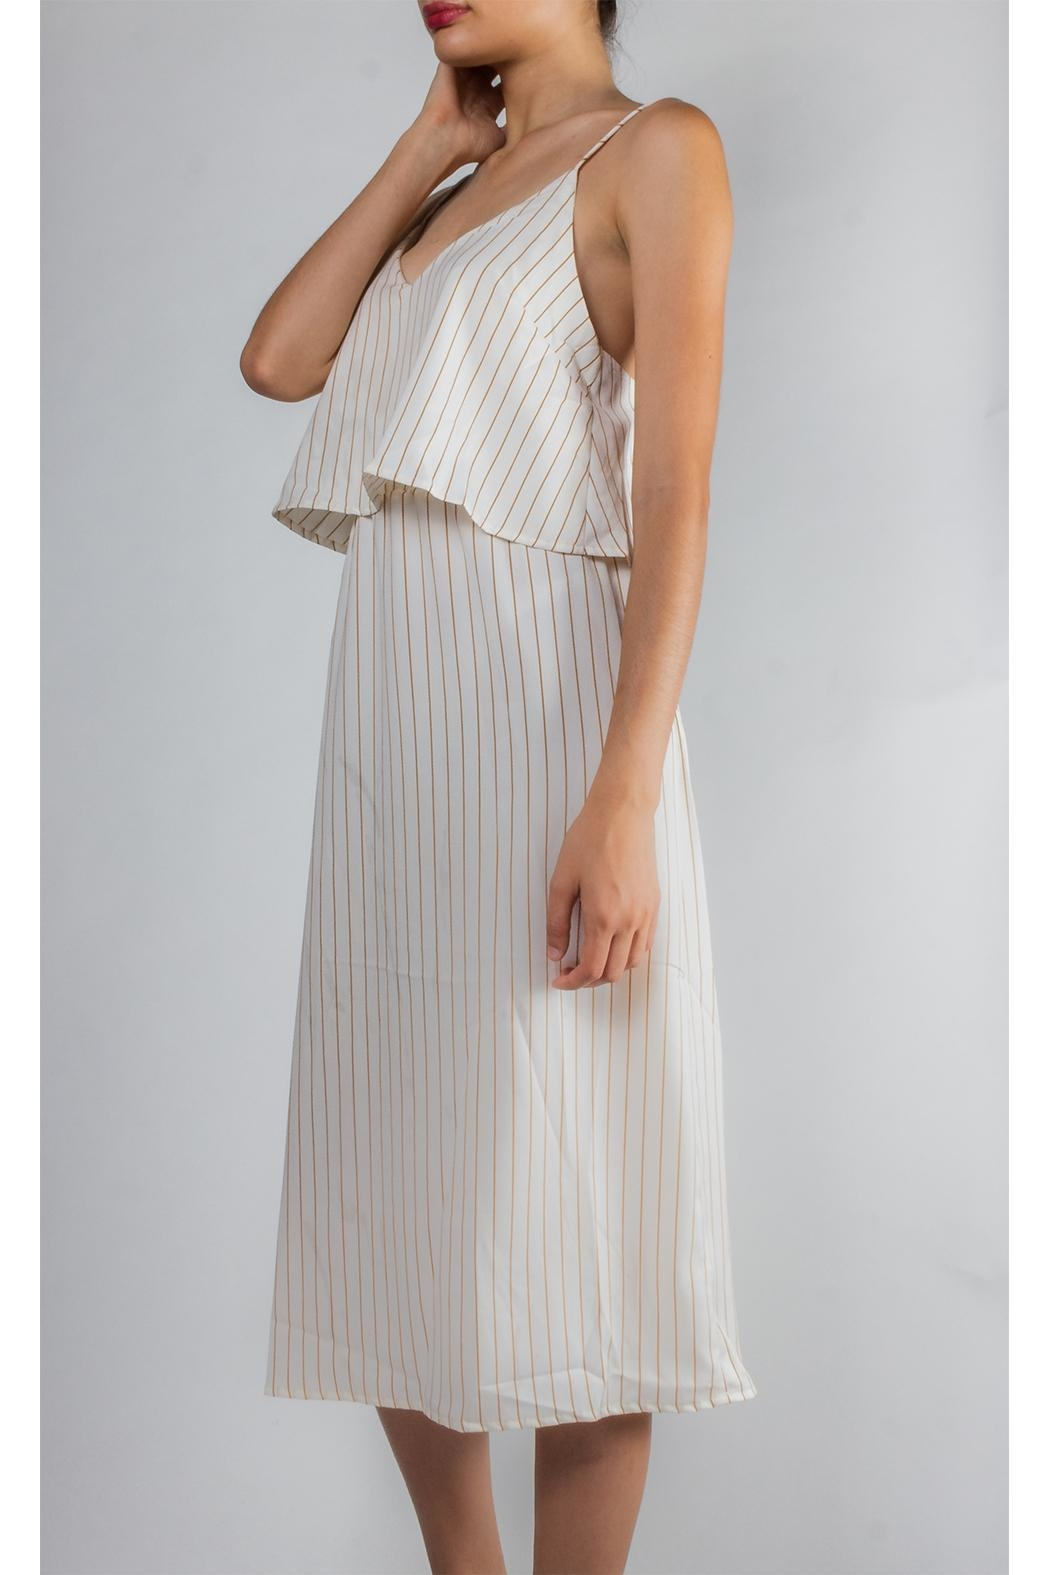 Emory Park Tiered Striped Dress - Front Full Image